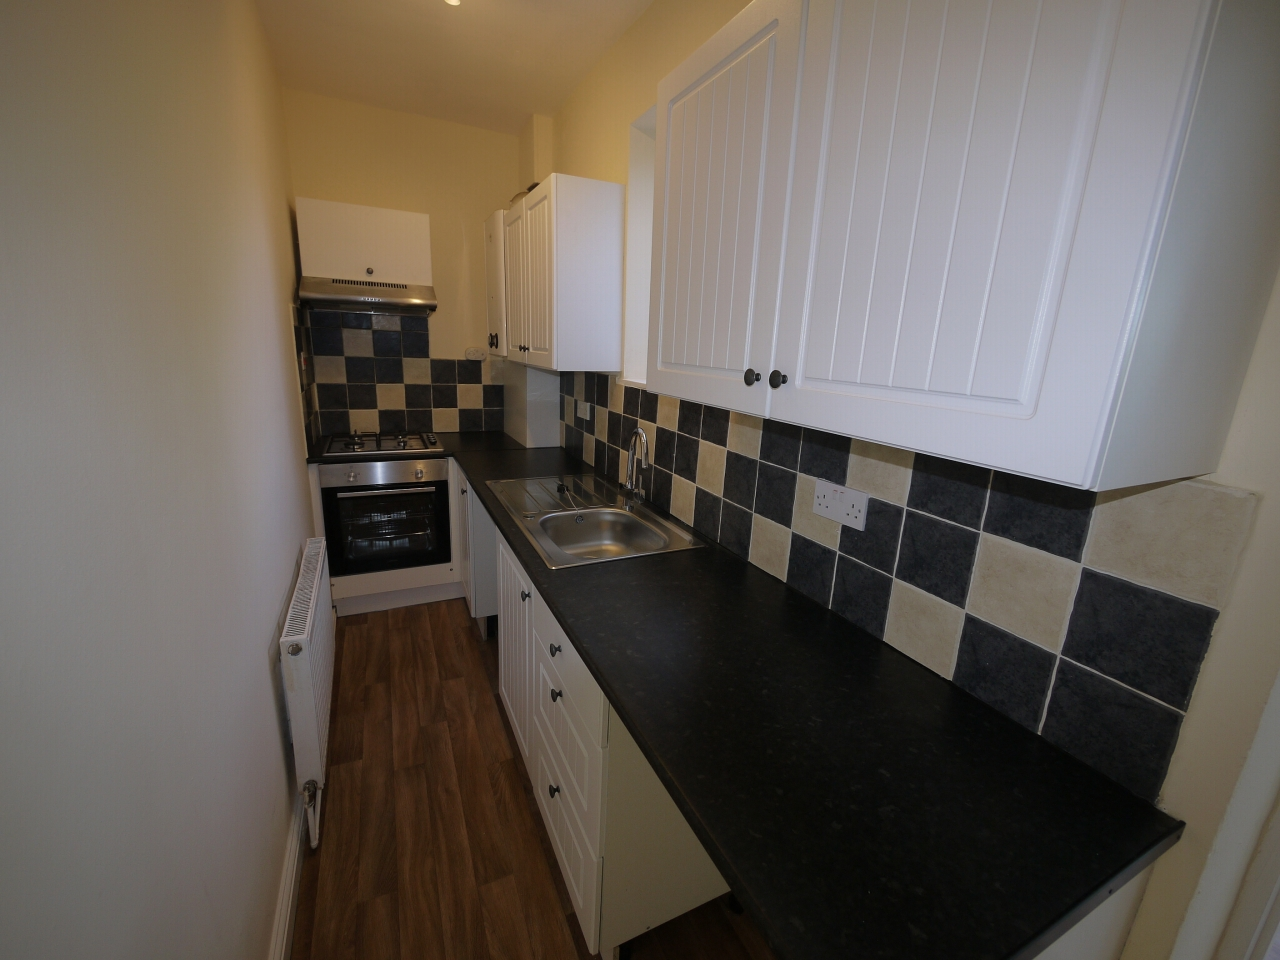 2 bedroom mid terraced house Let in Huddersfield - Photograph 4.